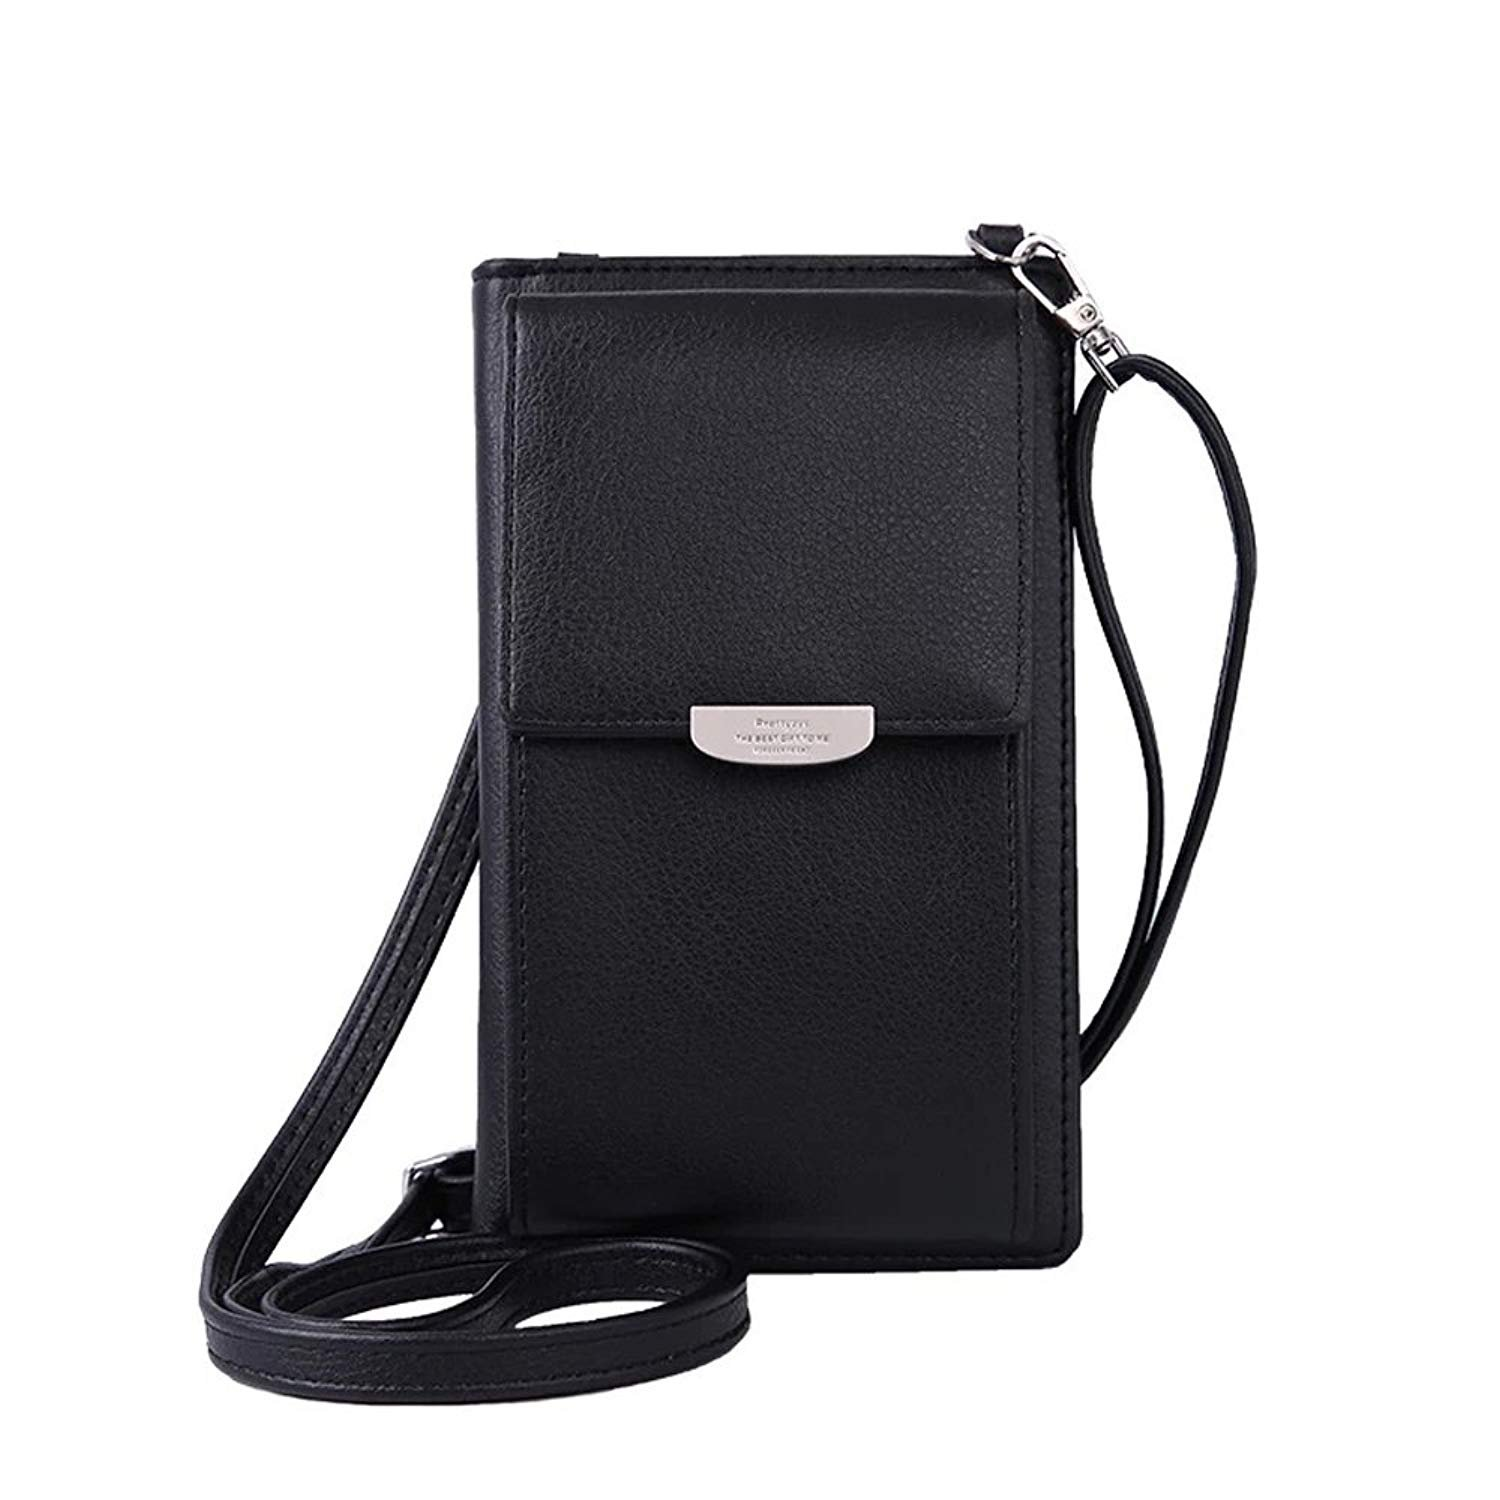 af4484e0d51a NYKKOLA Womens Wallet Bag Leather Coin Cell Phone Purse Handbag Mini  Cross-body Shoulder Bag with Strap